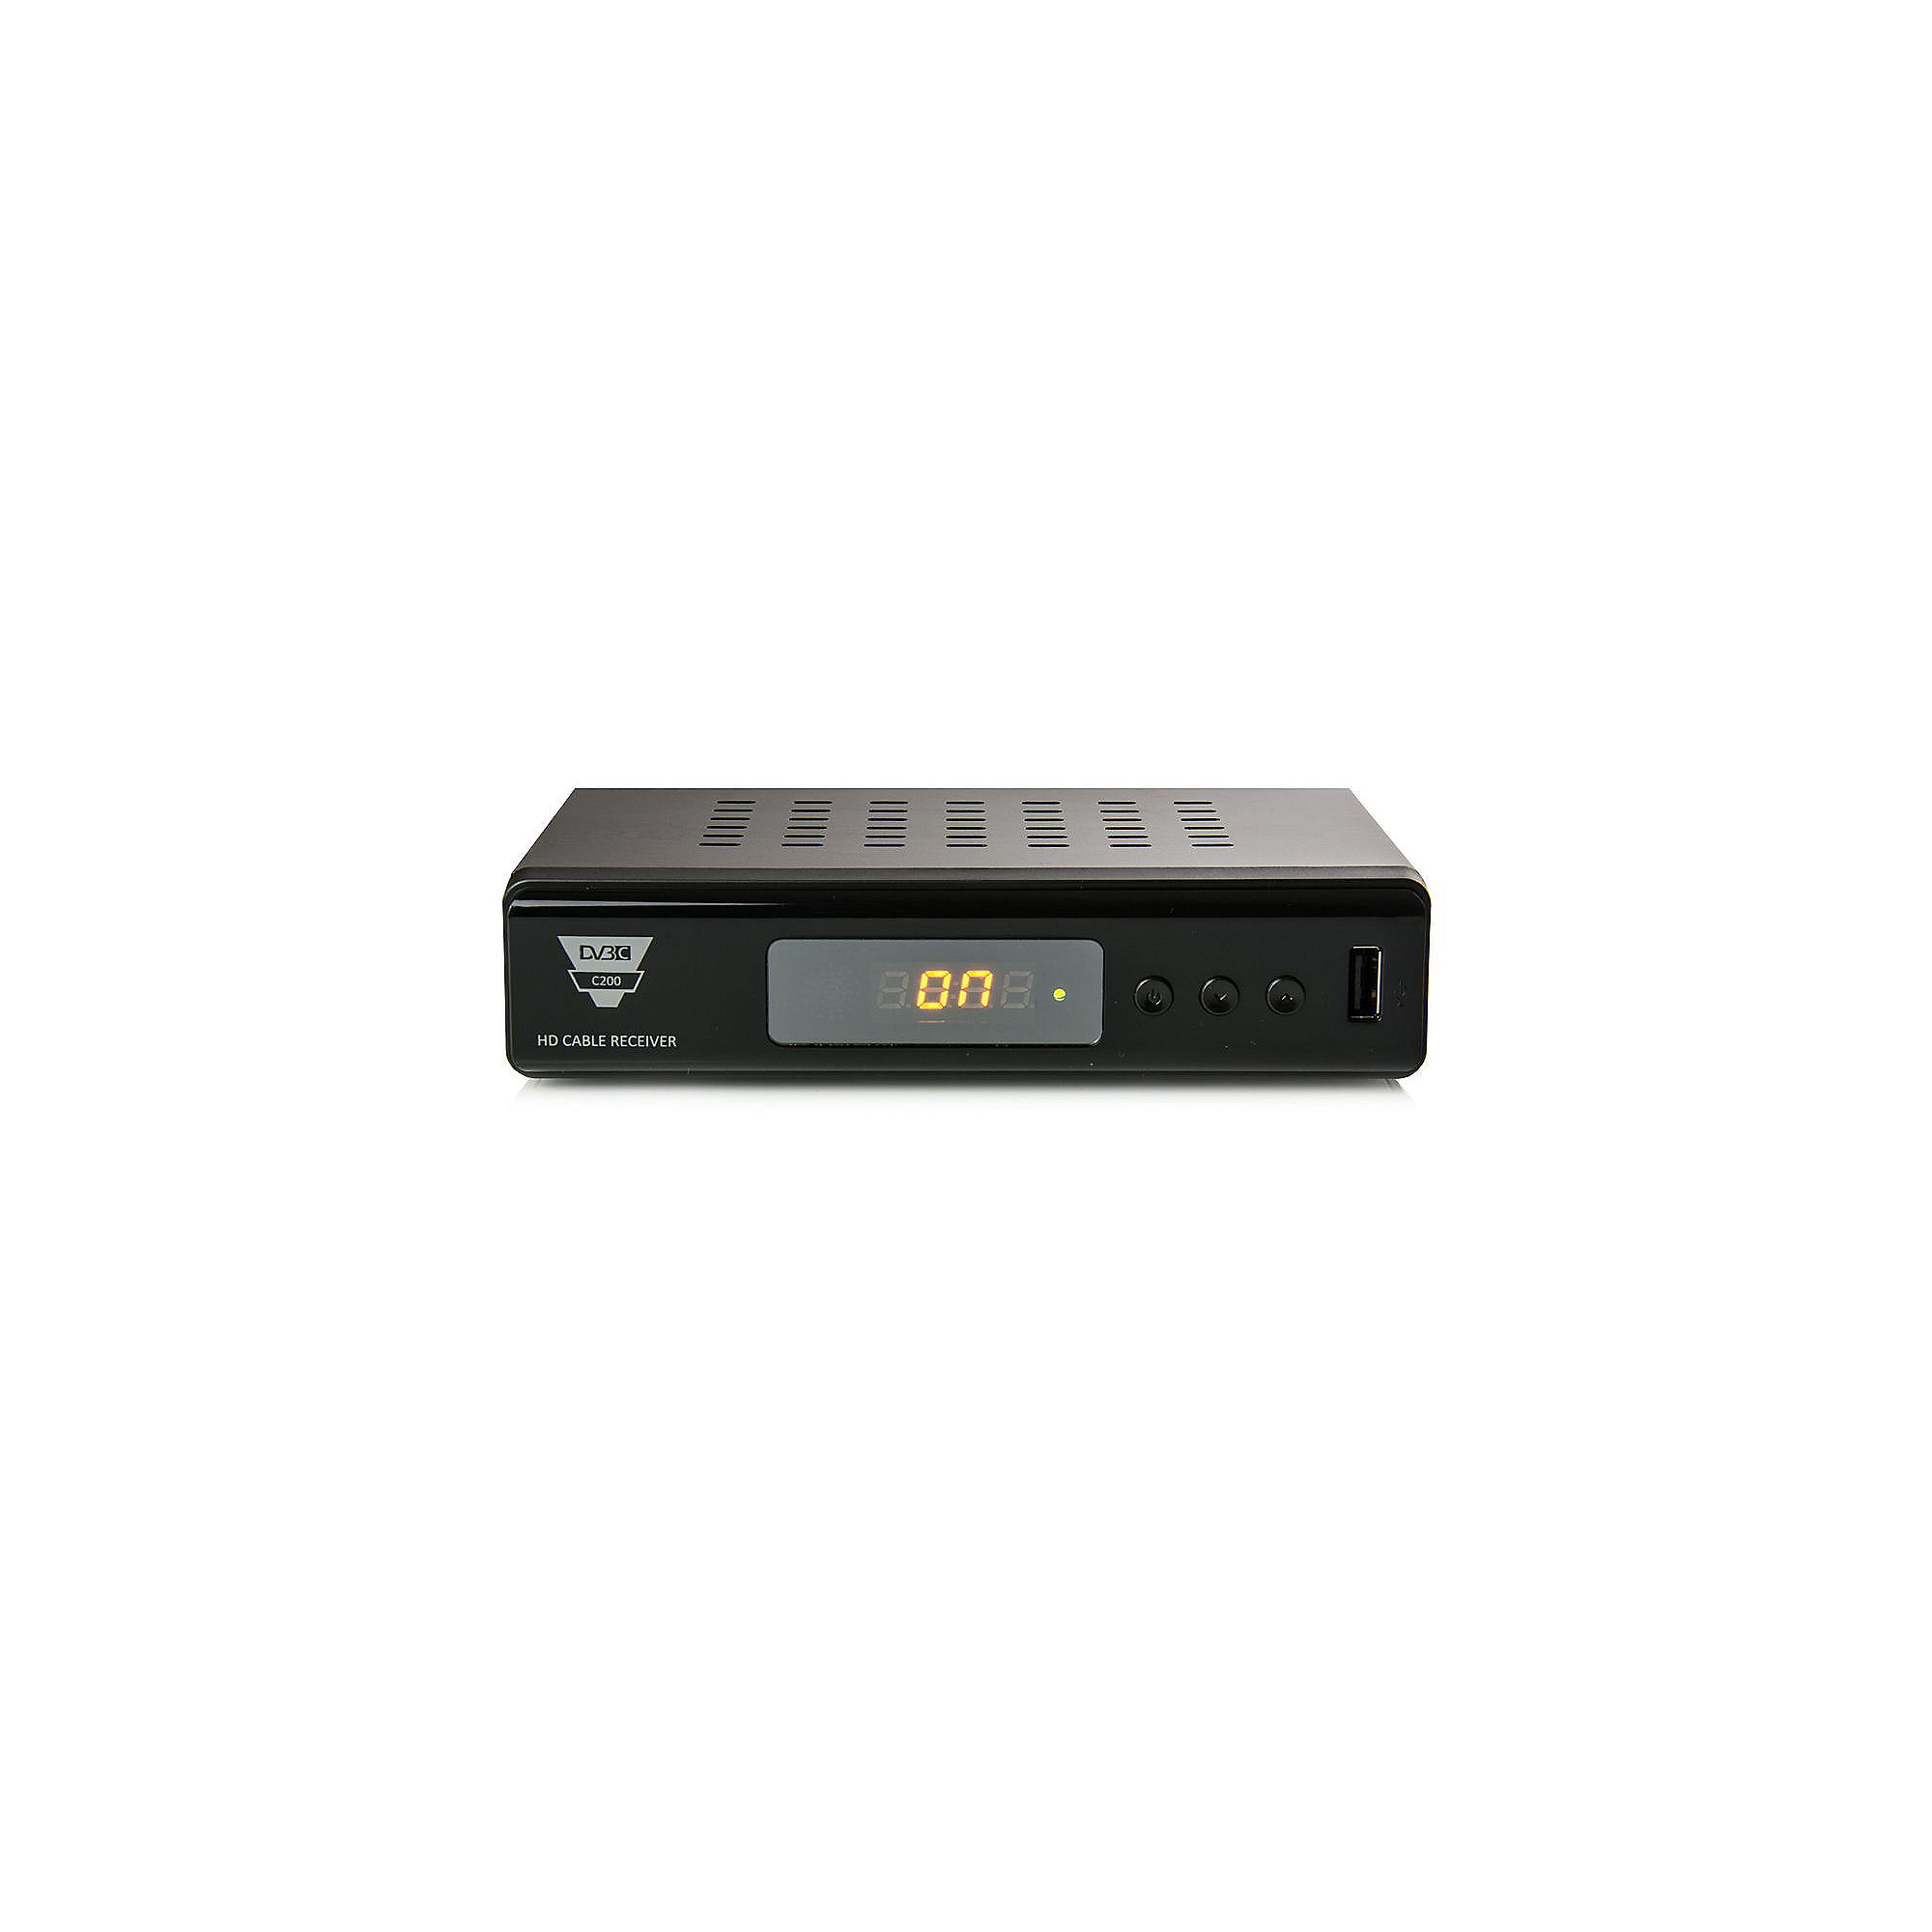 Opticum HD C200 Digital Kabelreceiver Full HD S-PDIF/Scart/USB/HDMI